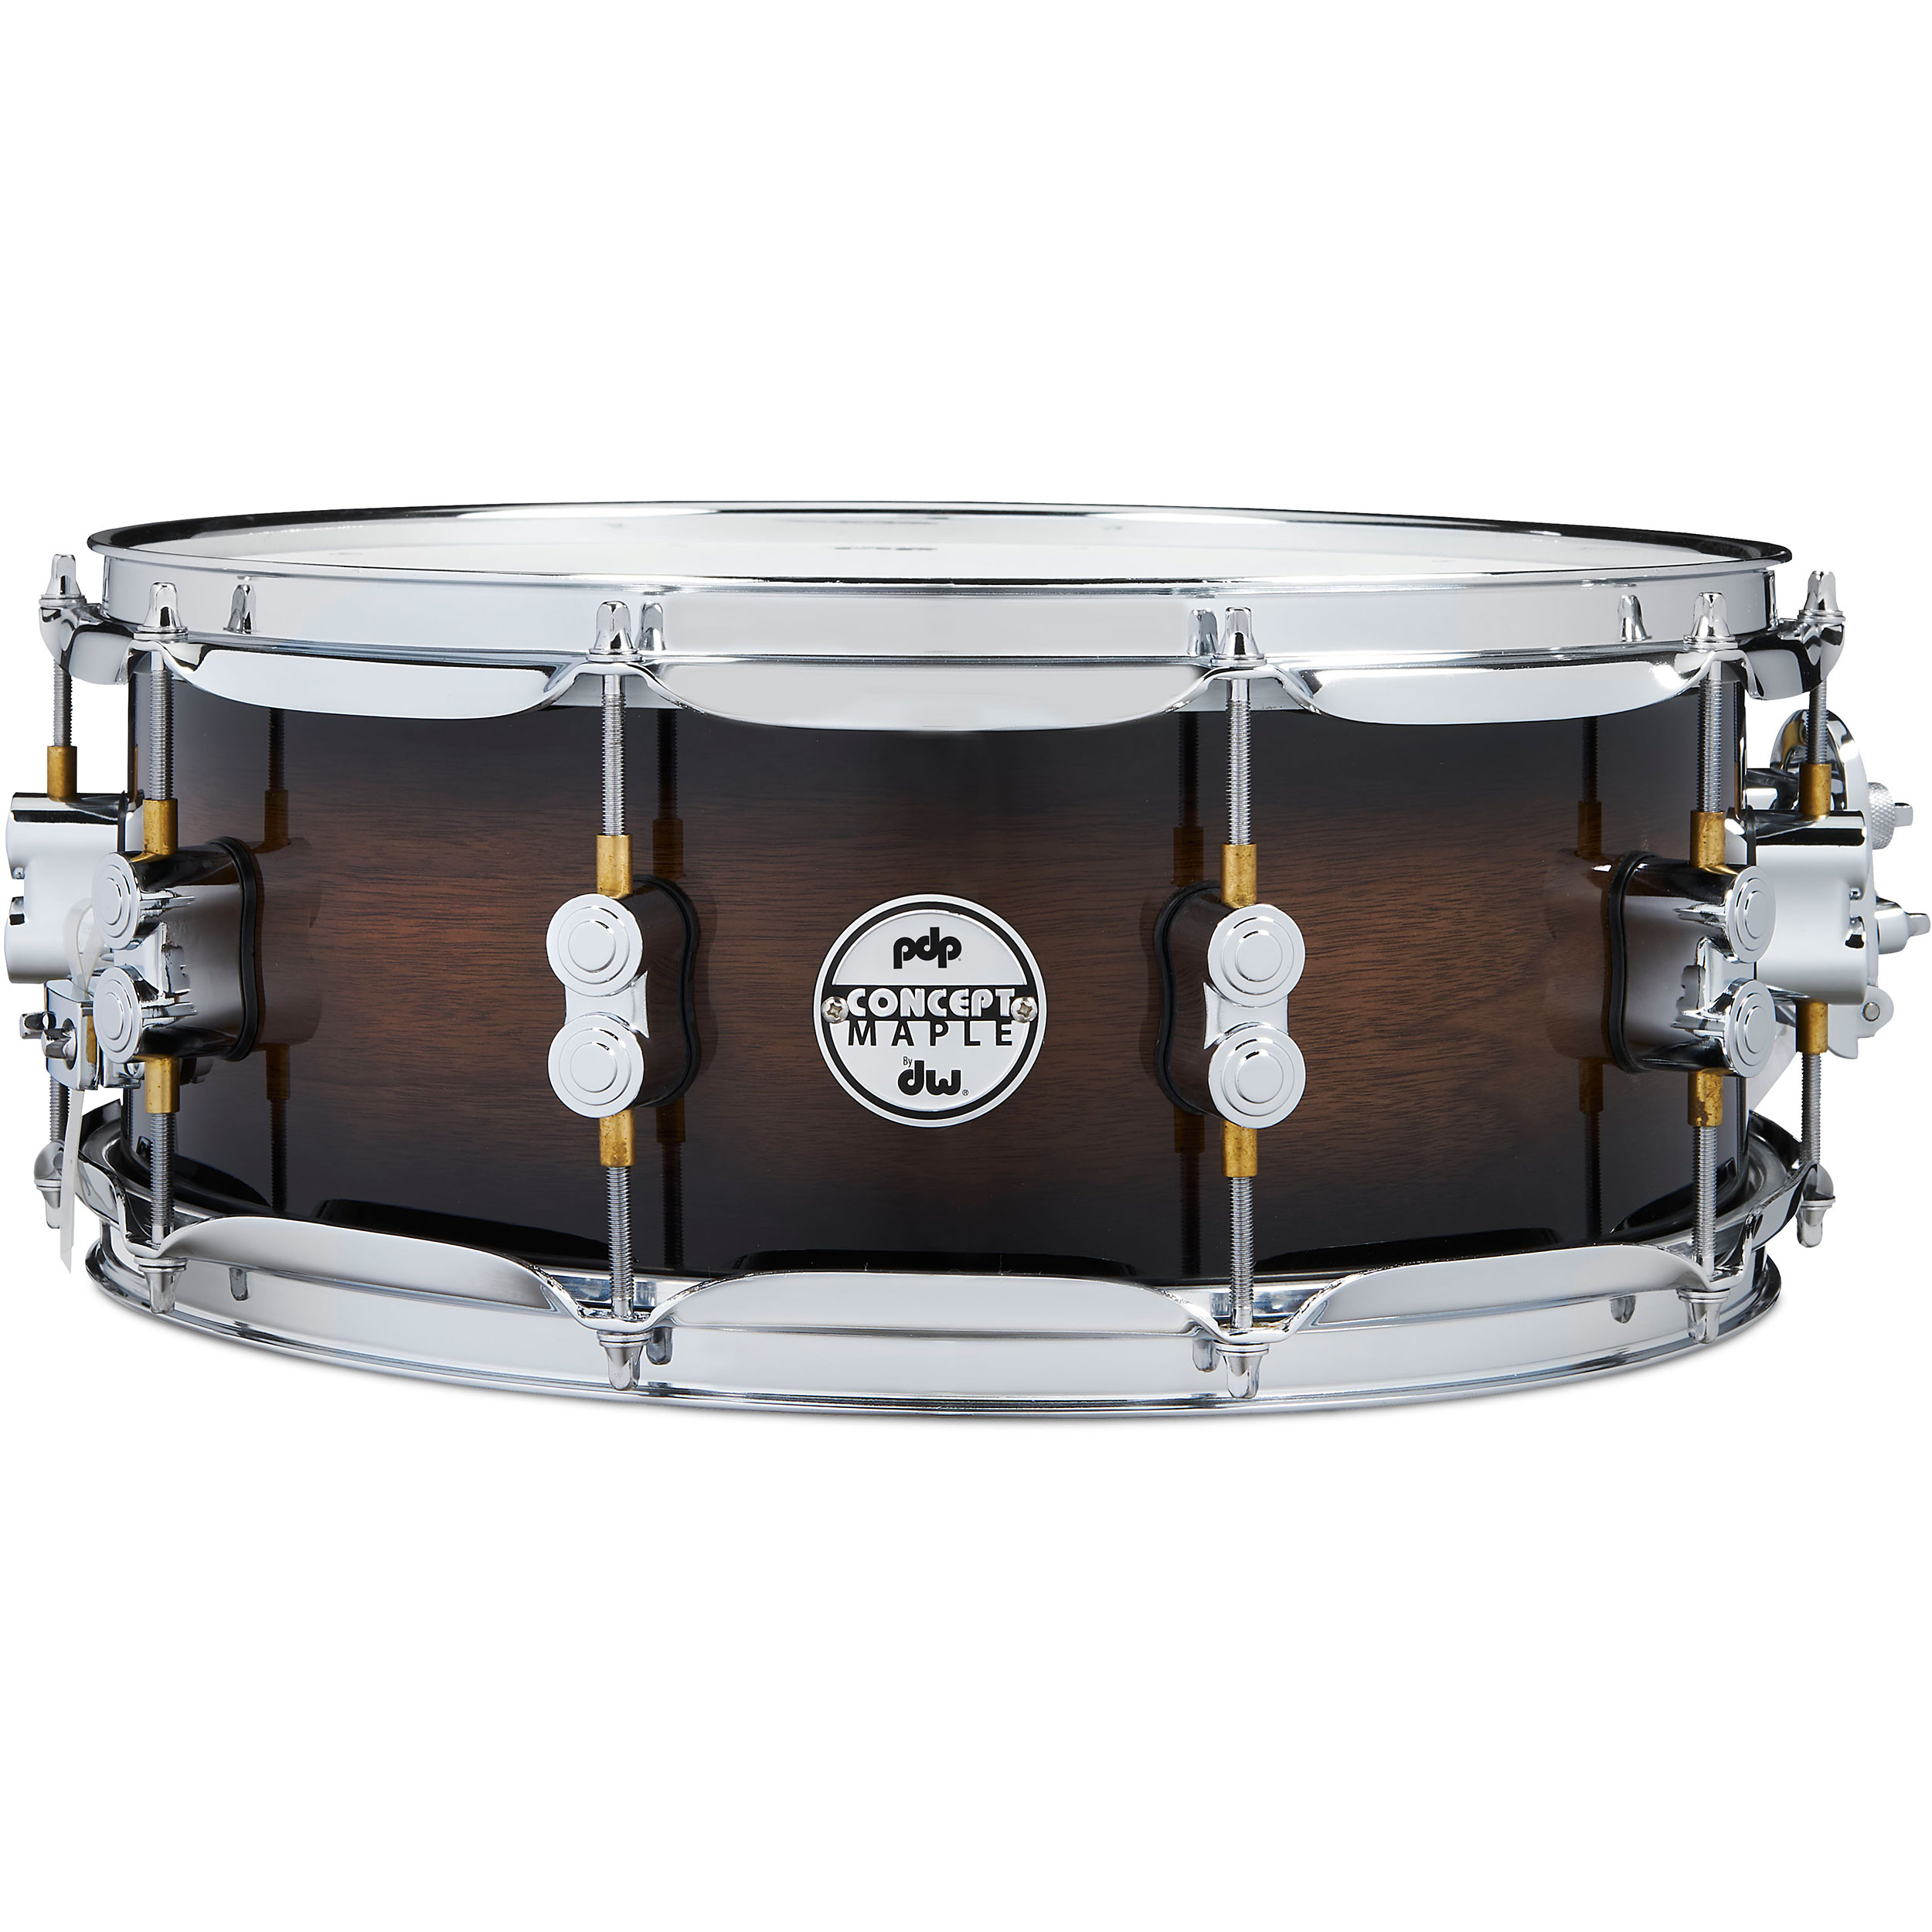 "PDP 5.5"" x 14"" Concept Exotic Snare Drum in Walnut to Charcoal Burst"